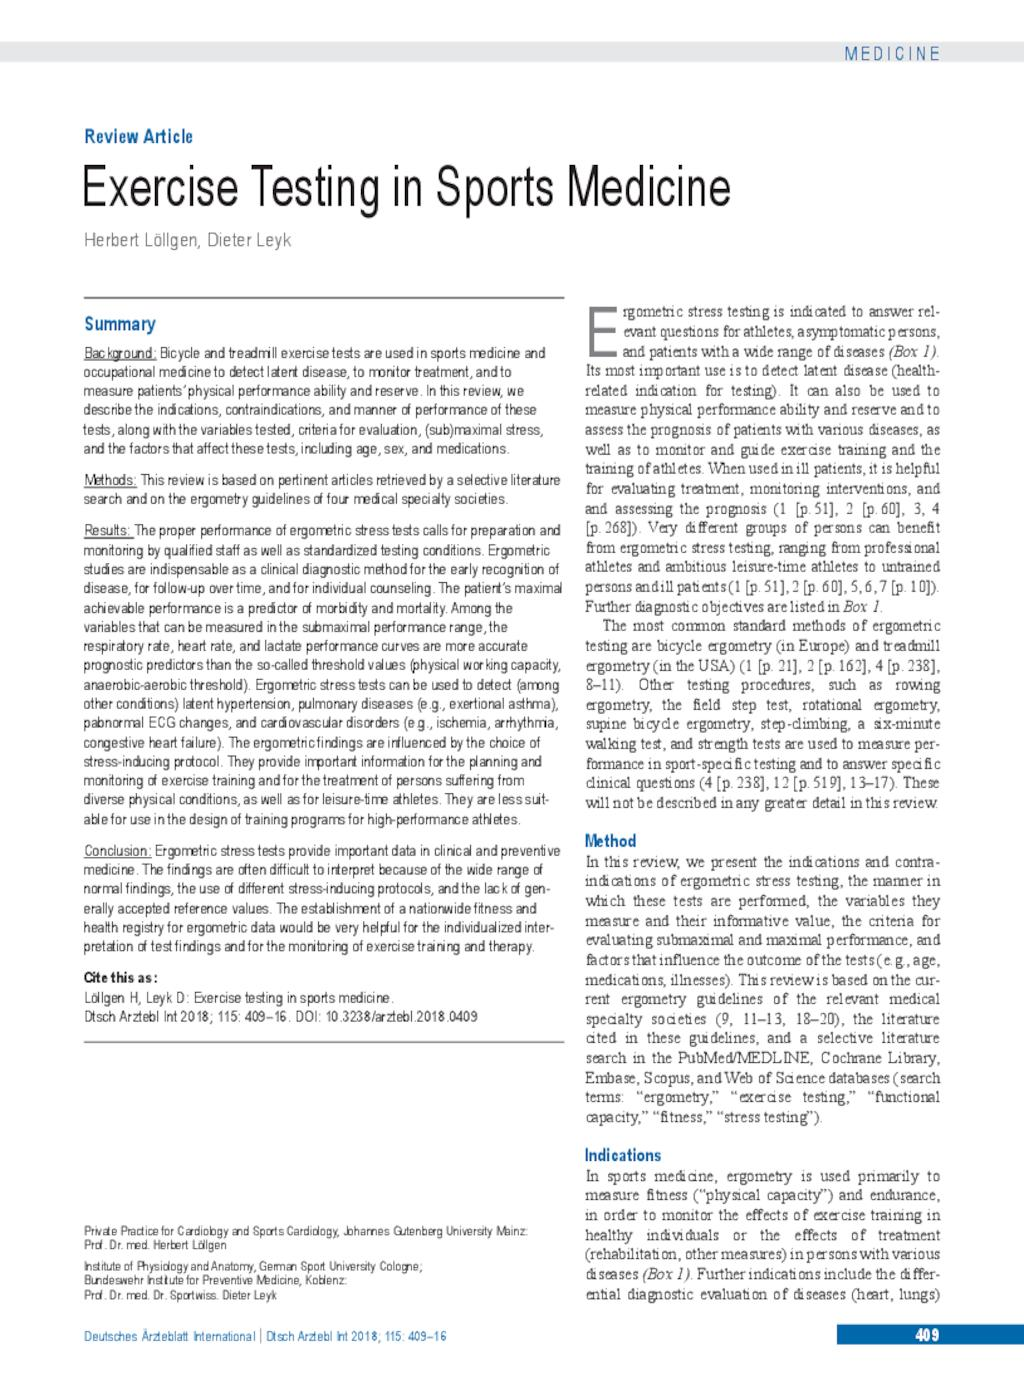 Exercise Testing in Sports Medicine (15.06.2018)